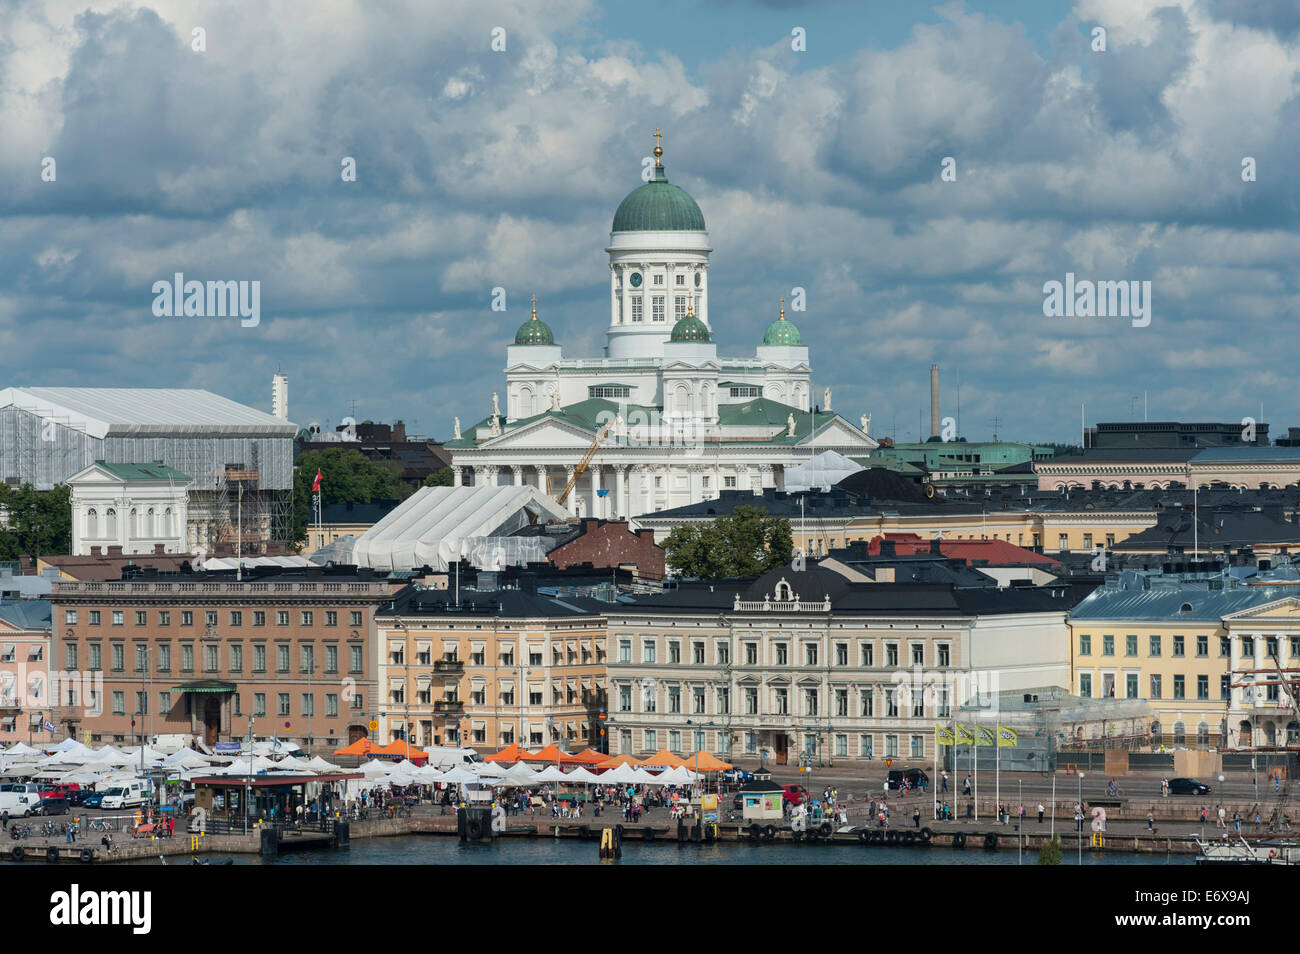 Helsinki Cathedral above the buildings at the harbour, Katajanokka district, Helsinki, Finland - Stock Image